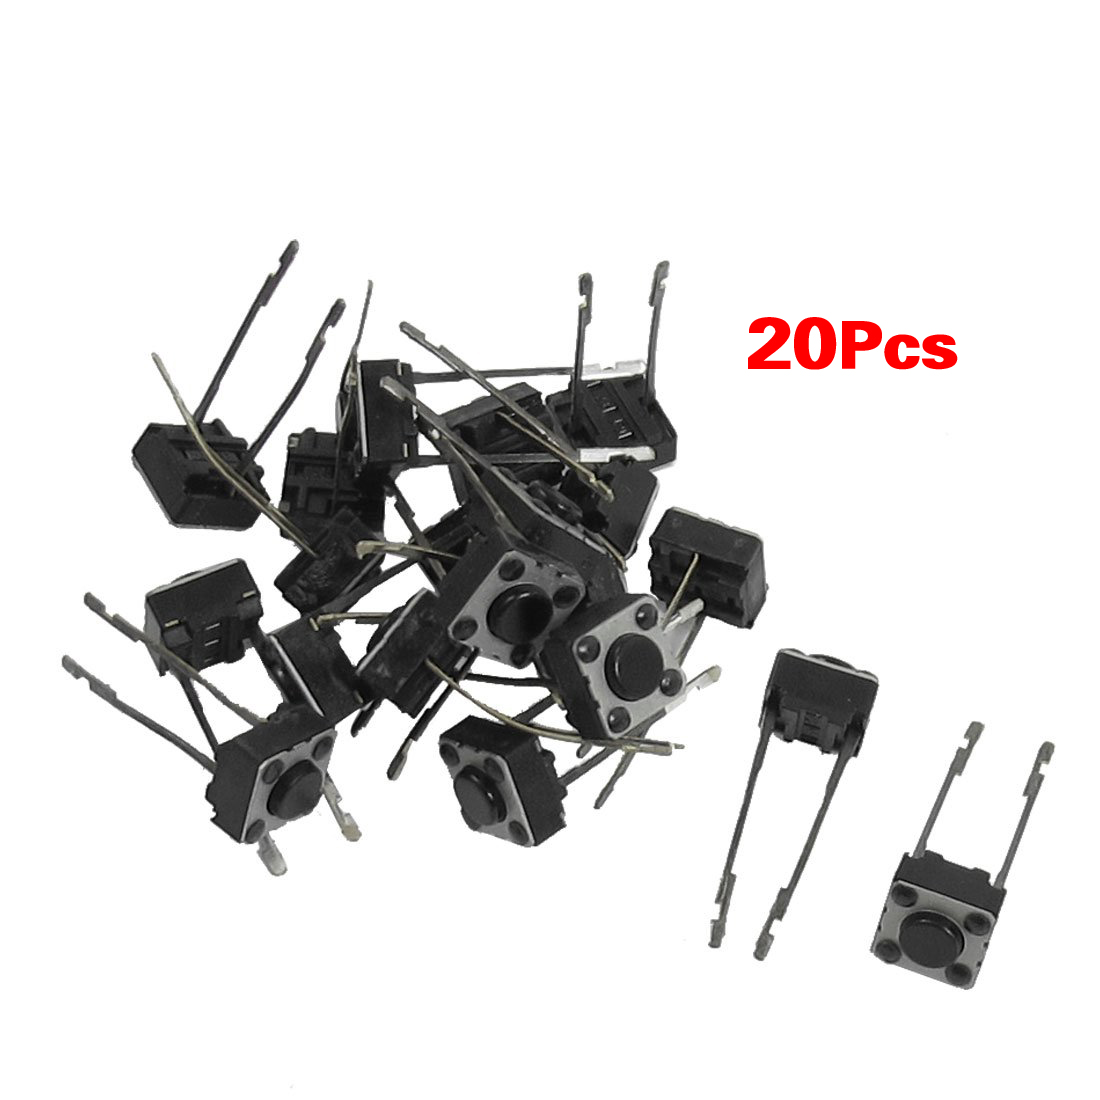 KSOL 20 Pcs 6x6x4mm Momentary Tactile Push Button Switch 2 Pin DIP Through